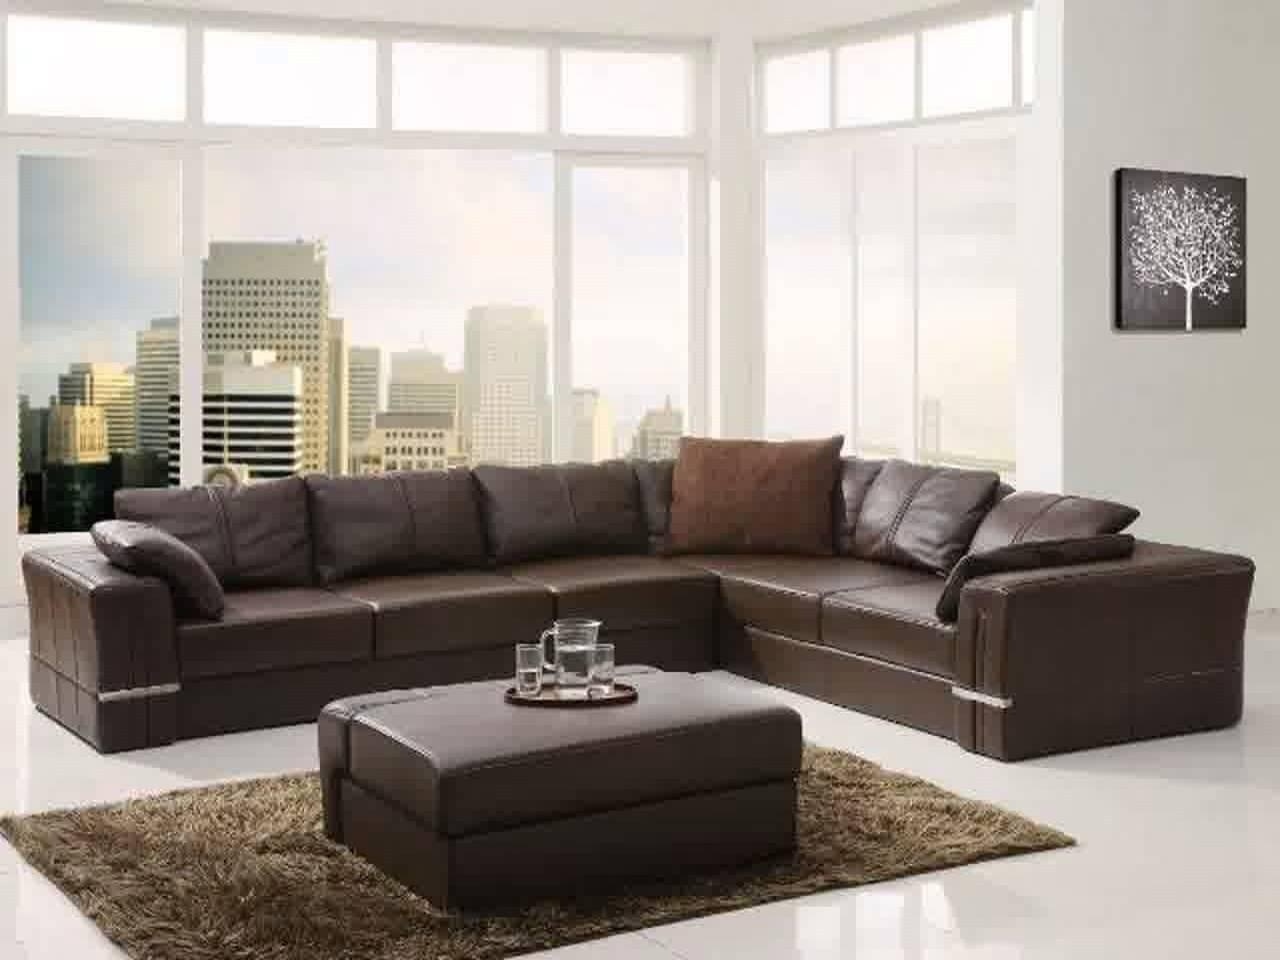 Big Lots Sectional Sofa | Sofa Gallery | Kengire Inside Big Lots Leather Sofas (View 19 of 20)